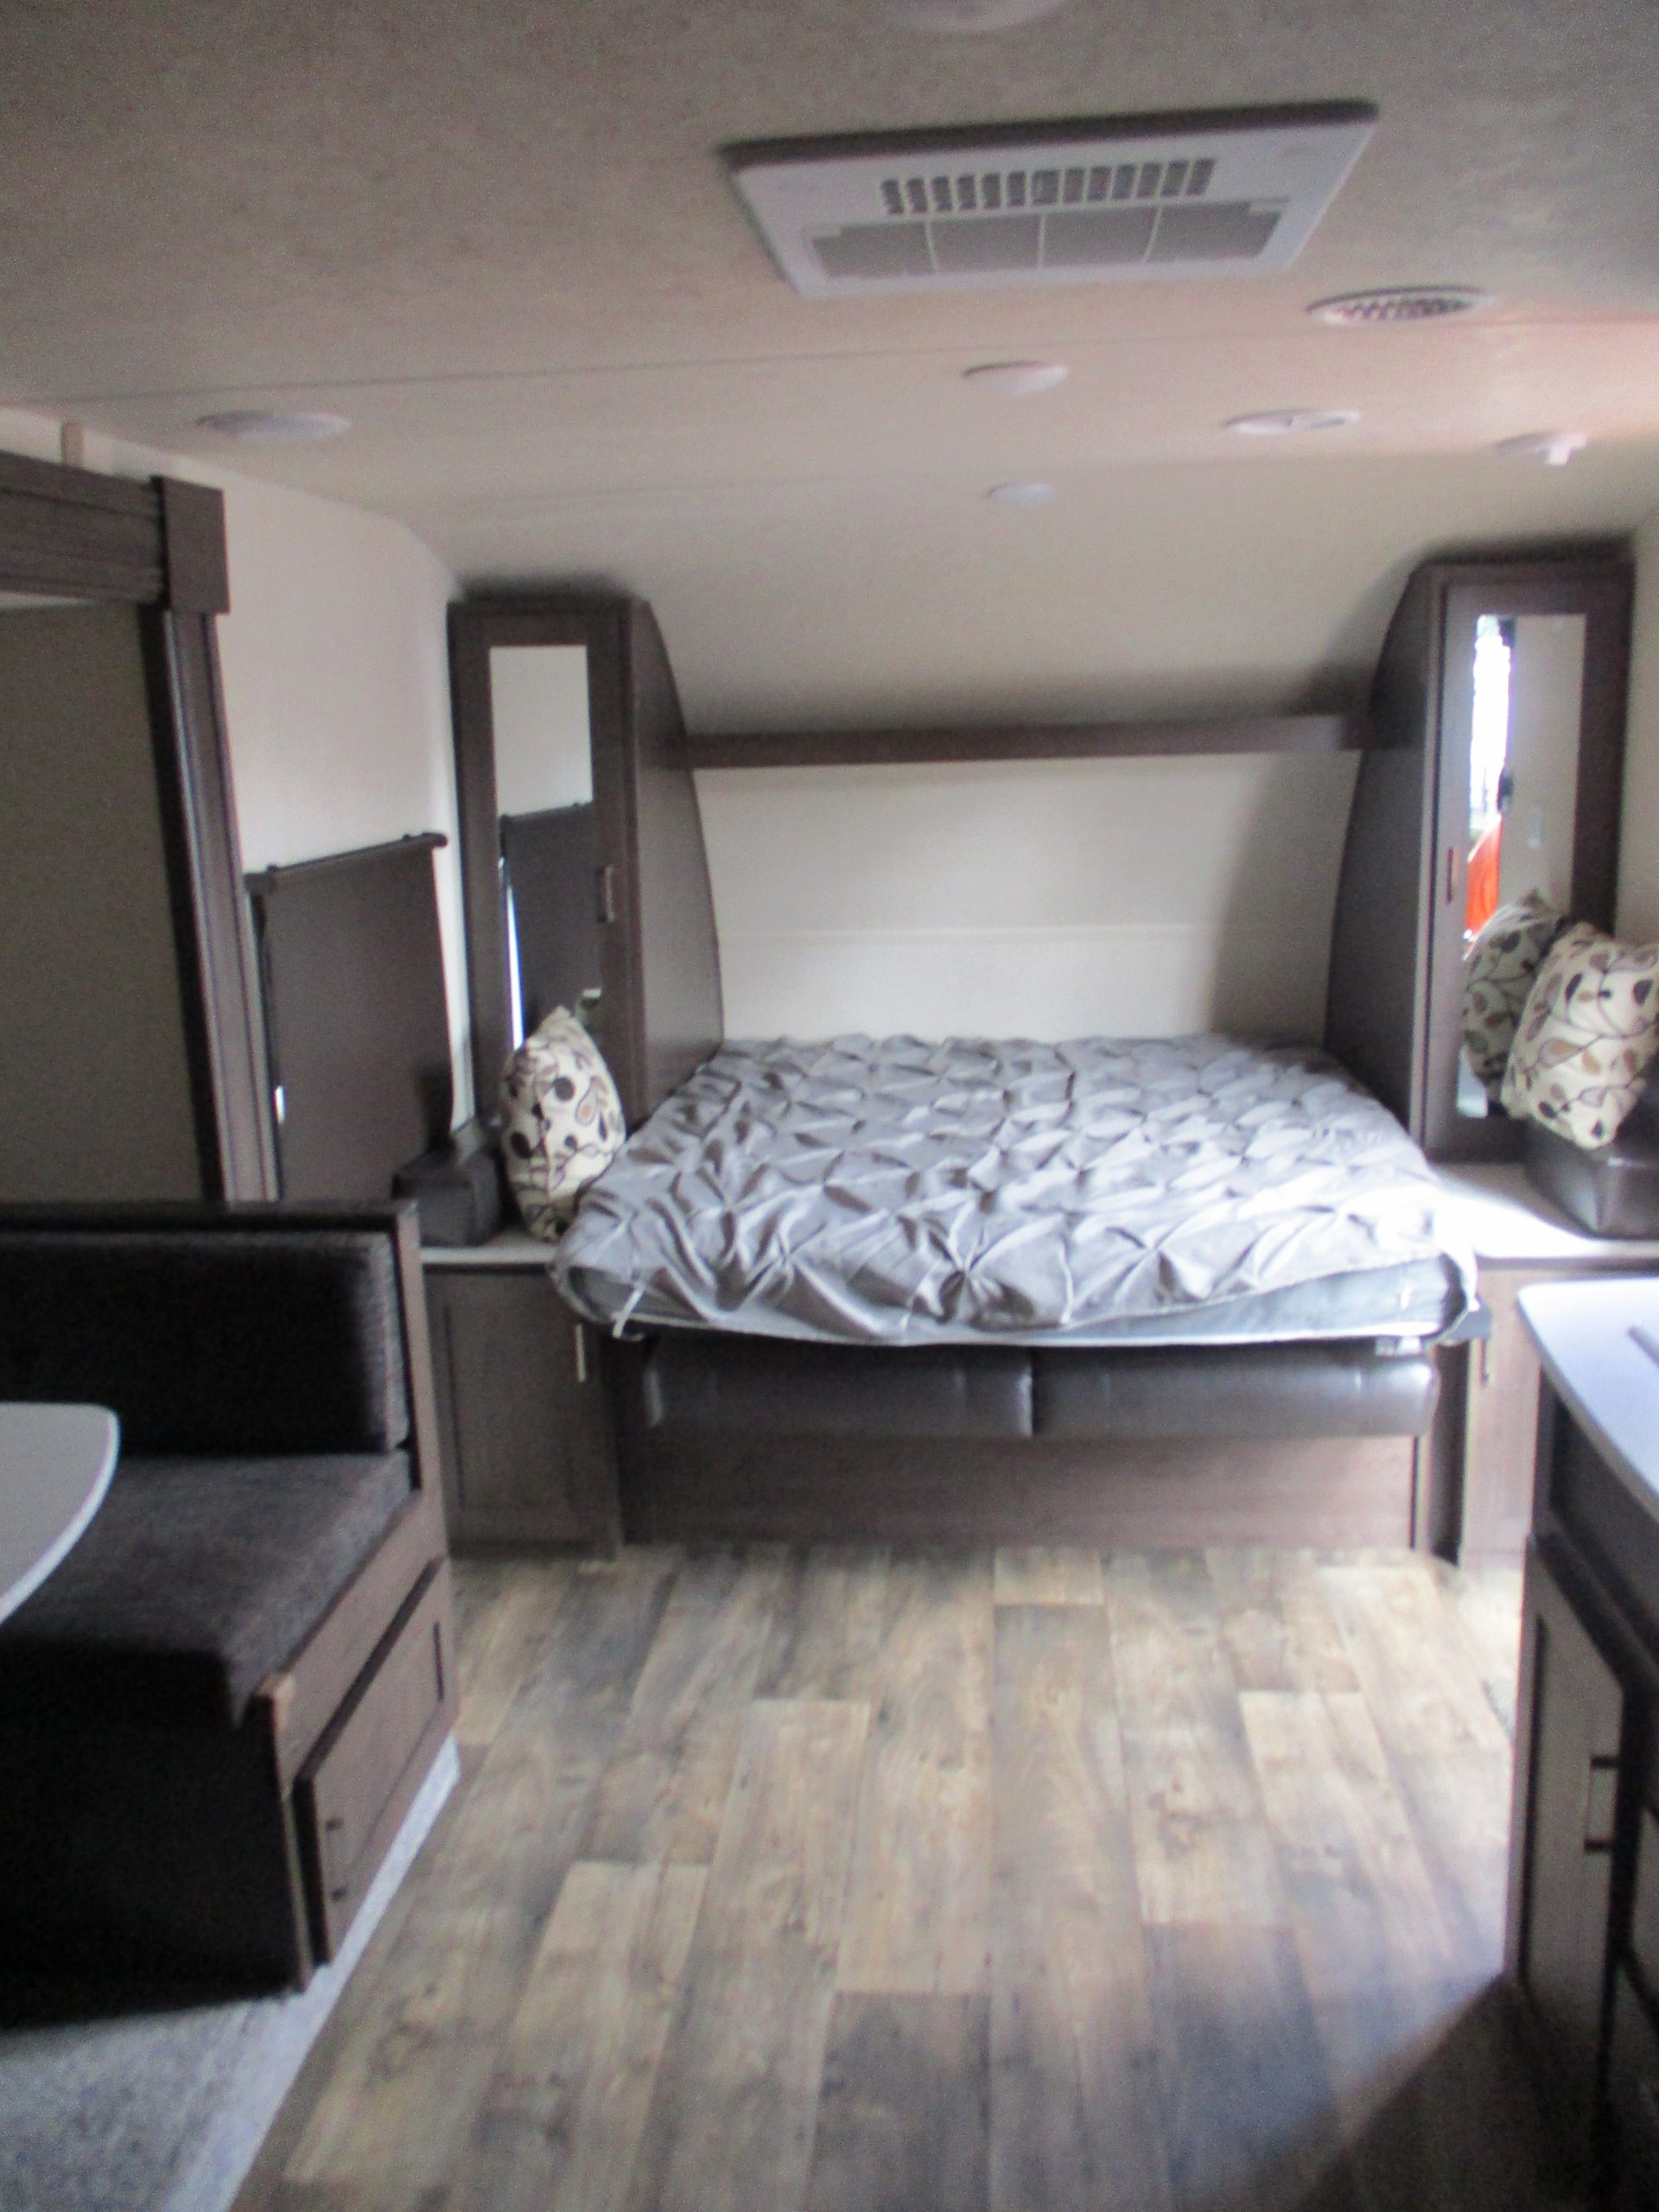 Camper Dealer of Travel Trailer within driving distance of ASU.